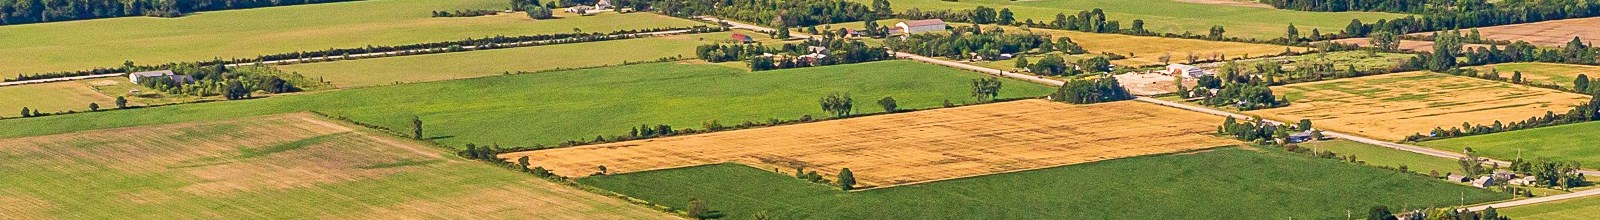 Aerial photo of a rural area in the Town of Essex